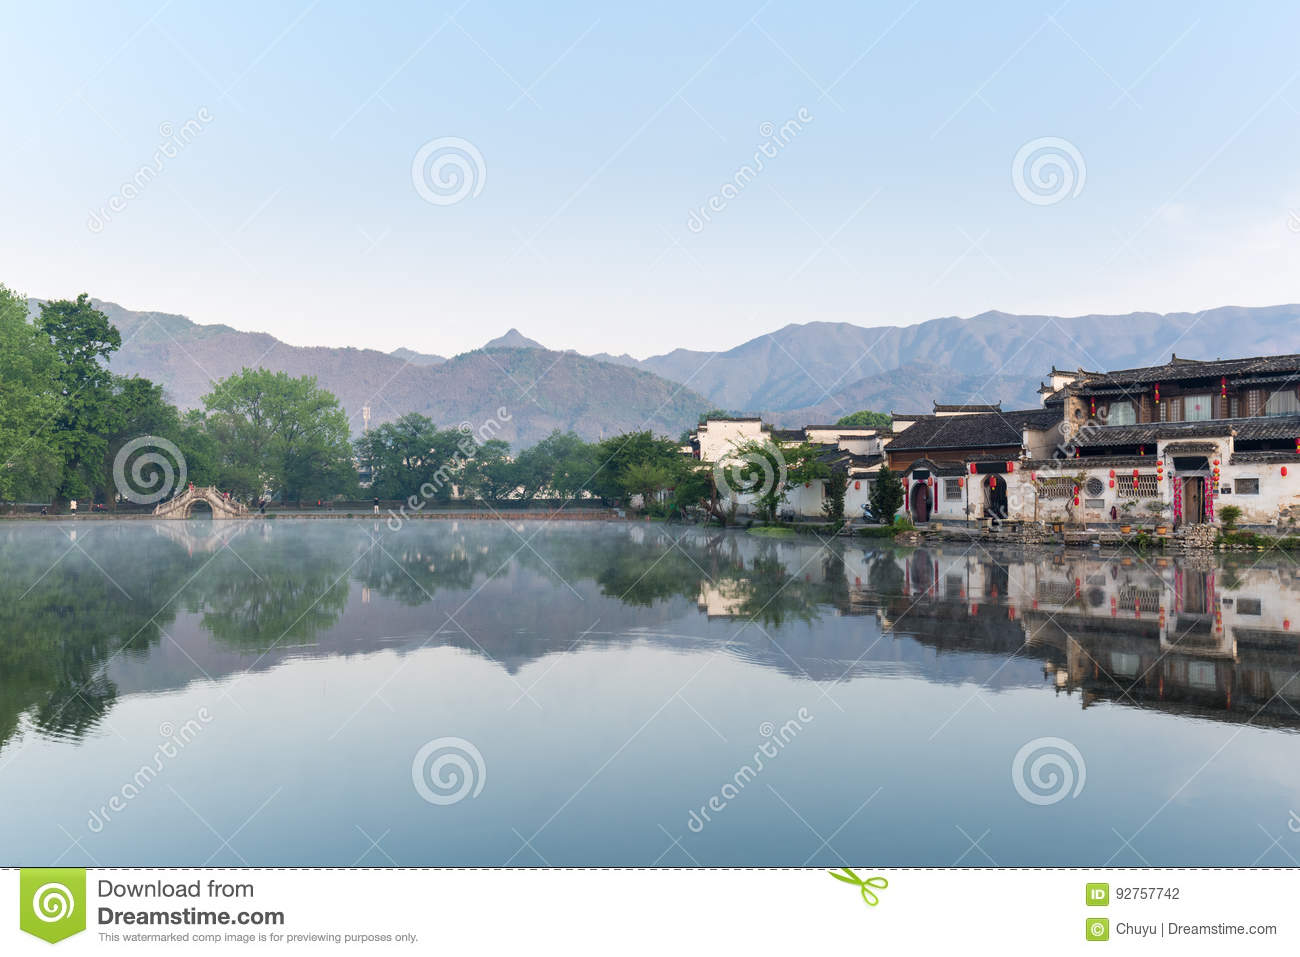 8ac0ded3f A Village In The Chinese Paintings Stock Photo - Image of mountain ...